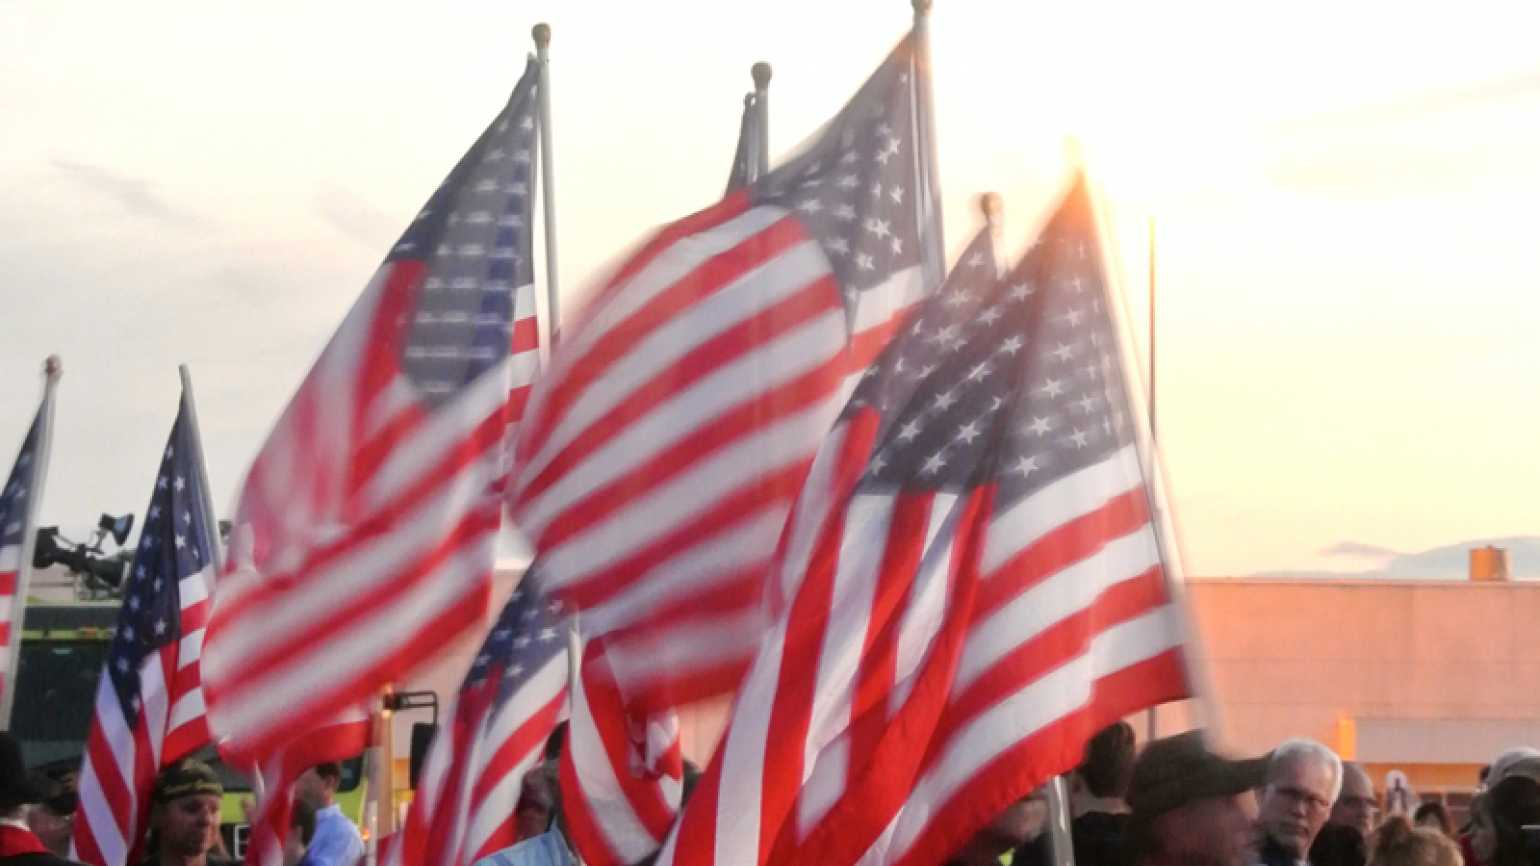 American flags waving in a crowd with sunlight behind them